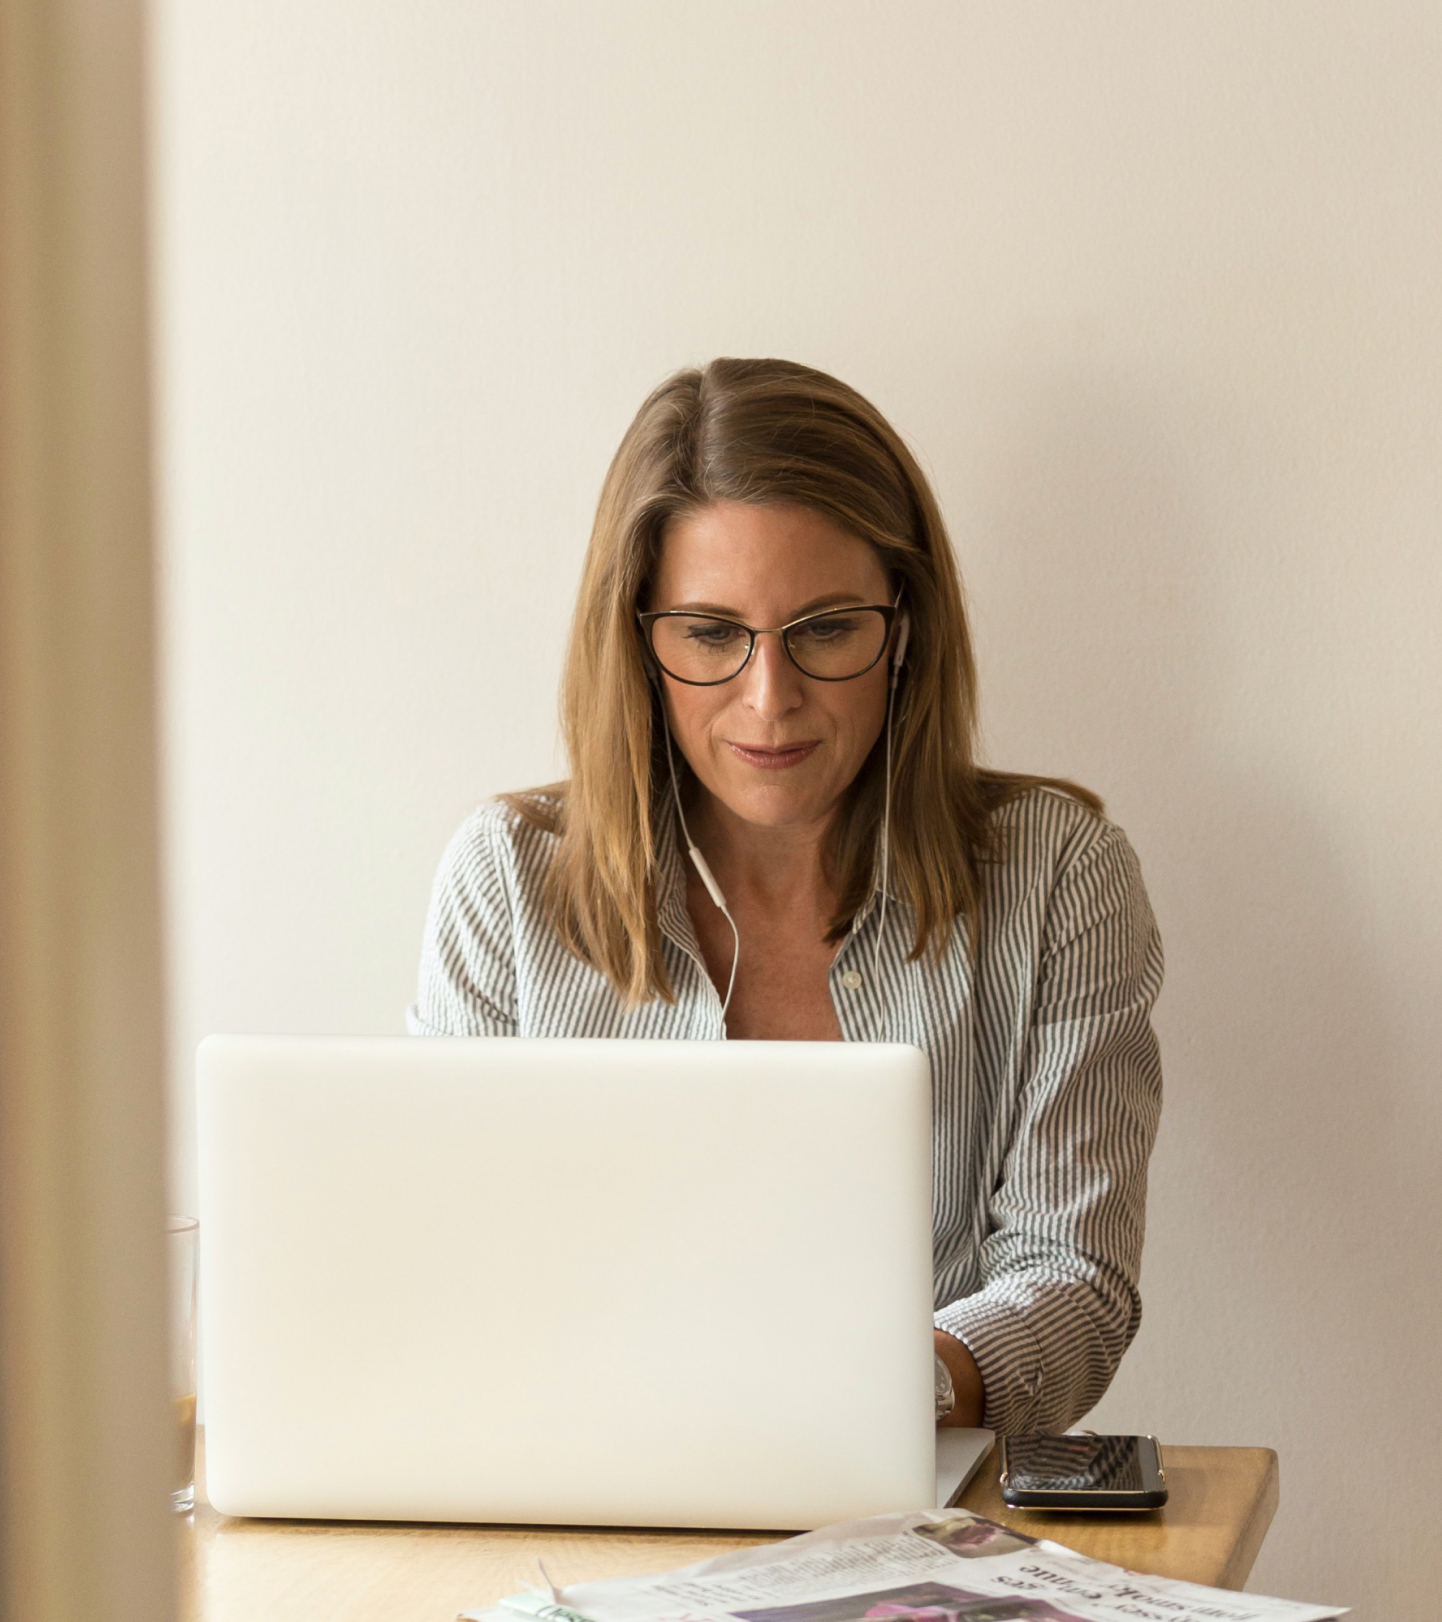 Office woman working